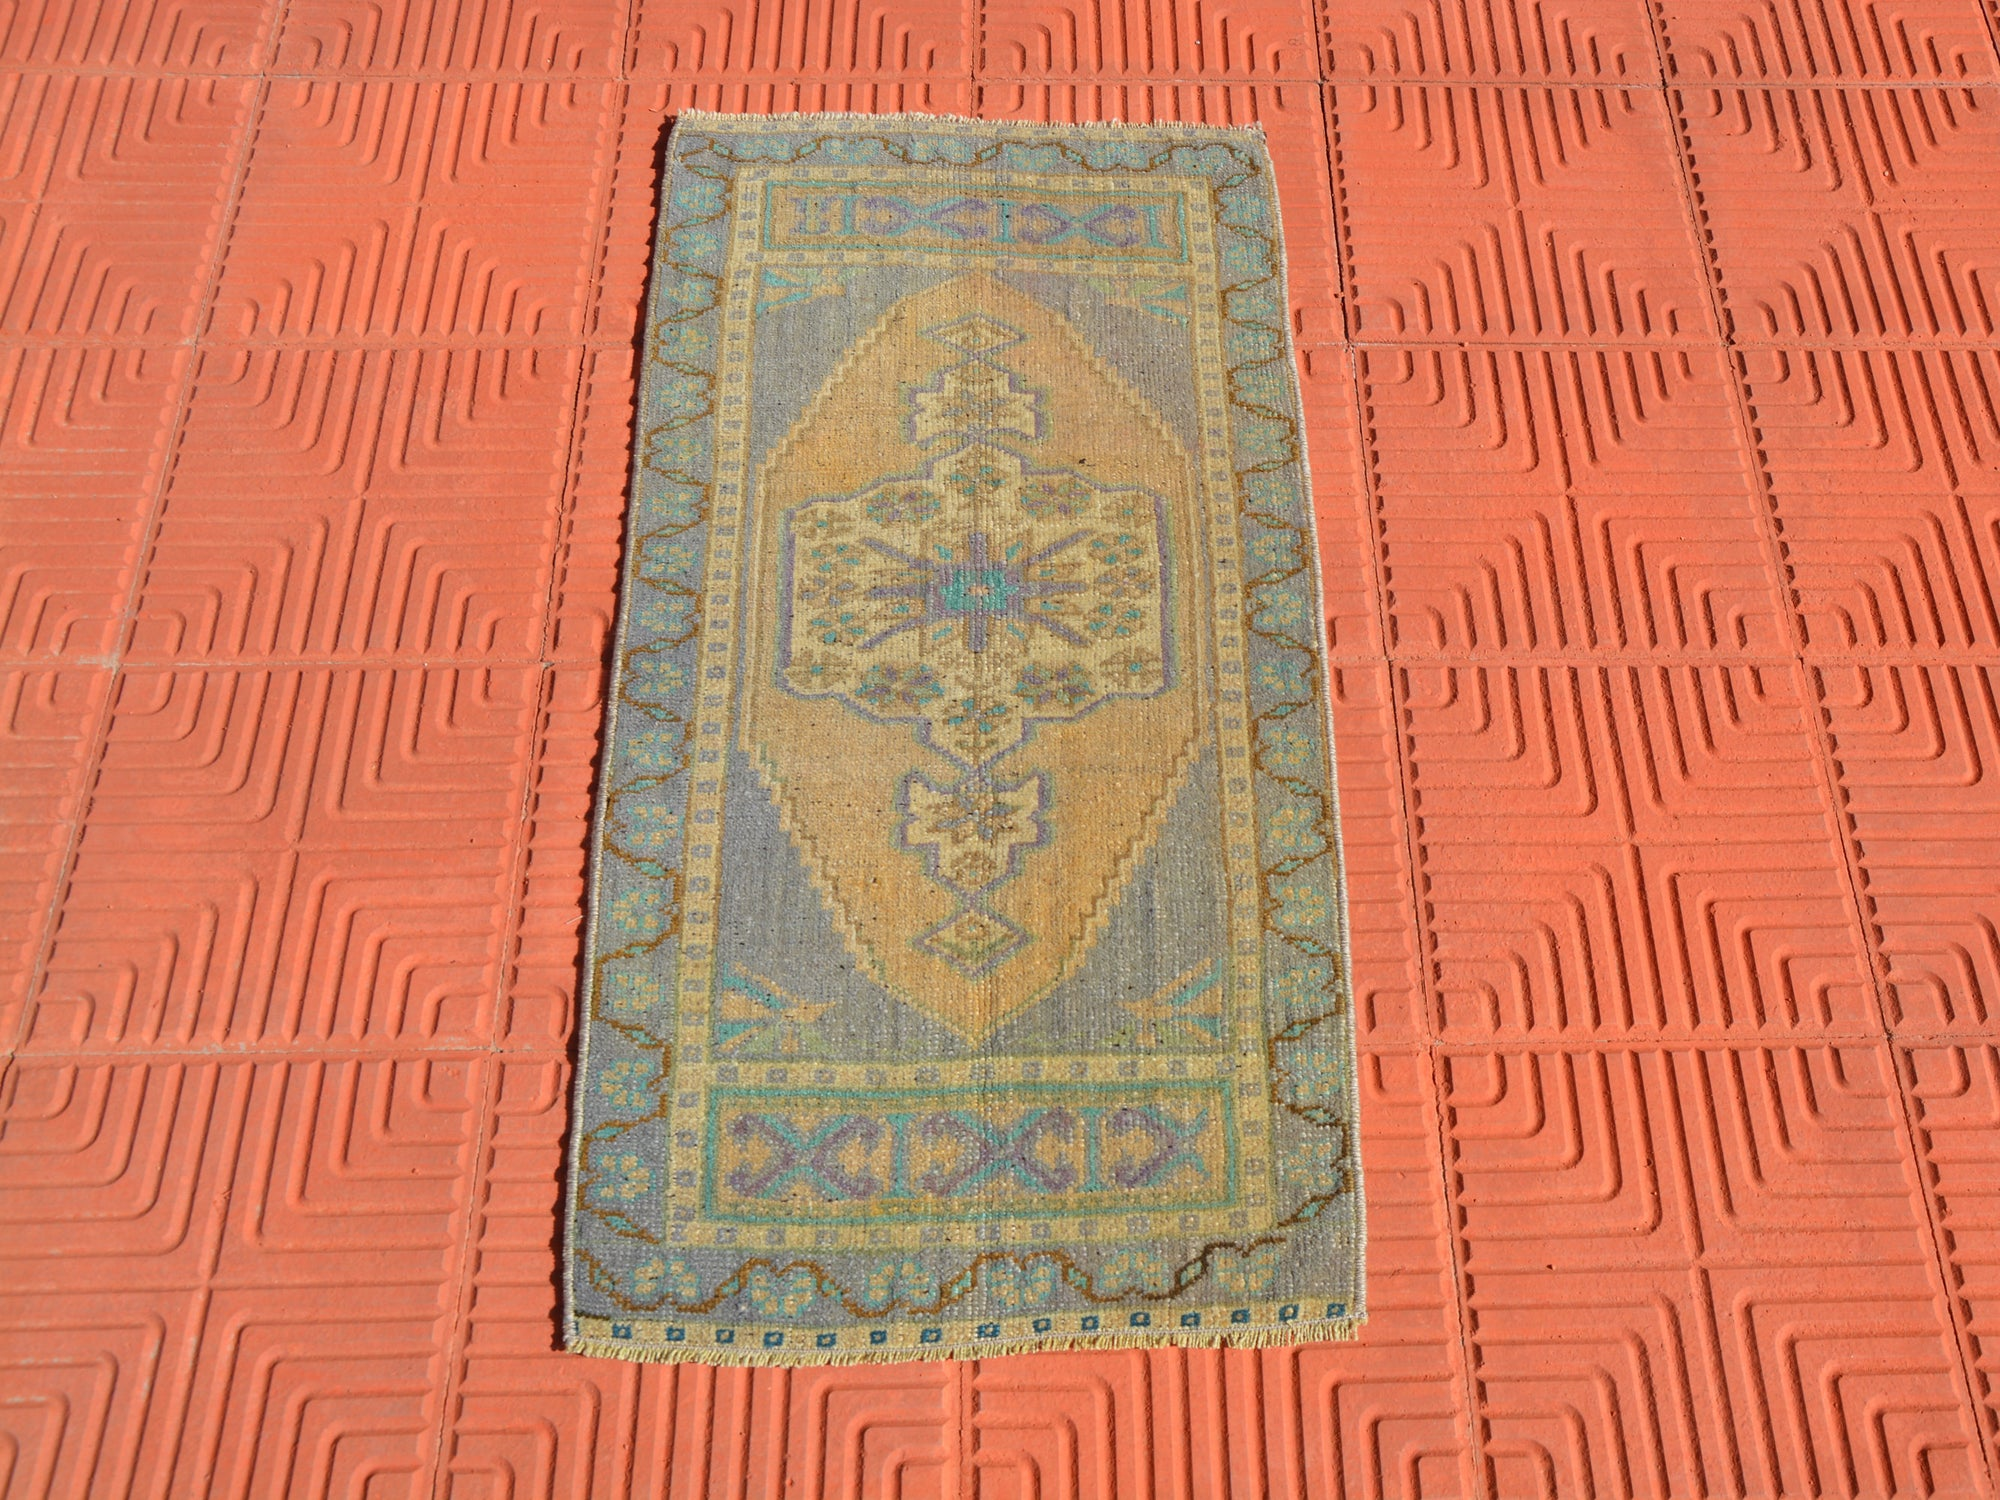 Turkish Rug,Small Turkish Rugs, Blue Rug, Antique Rug, Eclectic Vintage Rug, Vintage Turkish Rug,     1.6 x 3.3 Feet AG1607